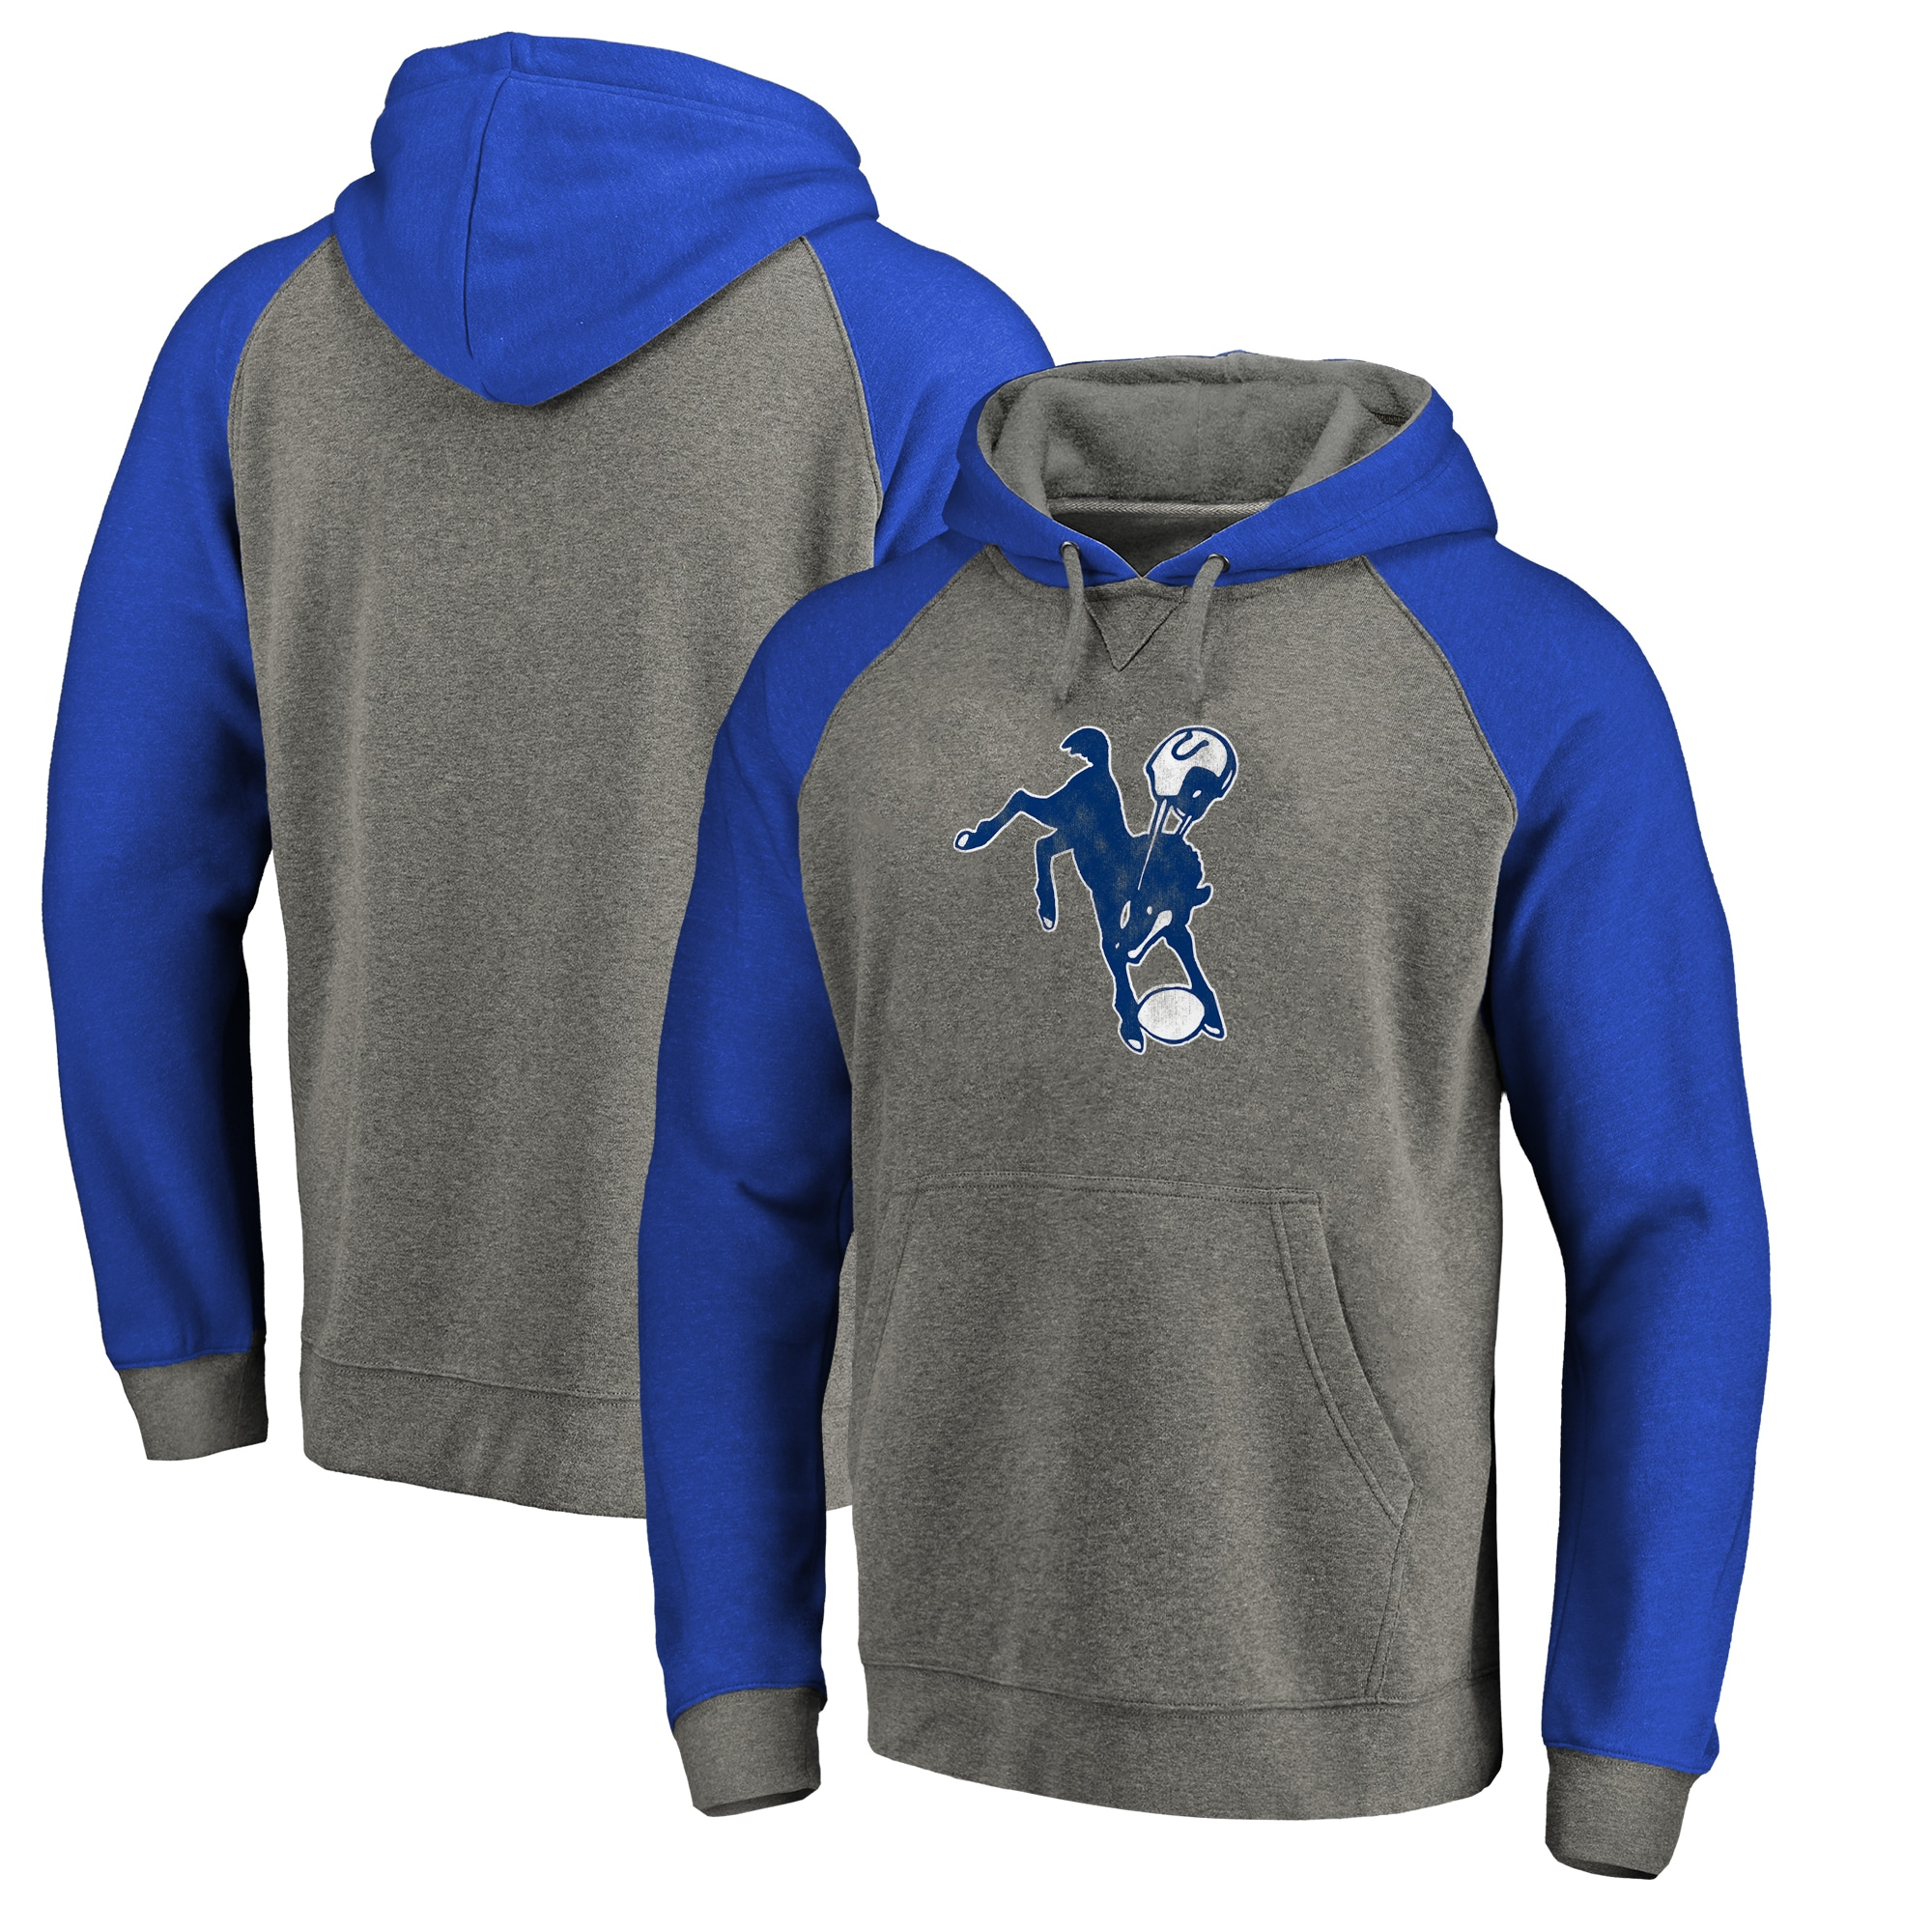 Indianapolis Colts NFL Pro Line by Fanatics Branded Throwback Logo Tri-Blend Raglan Pullover Hoodie - Gray/Royal